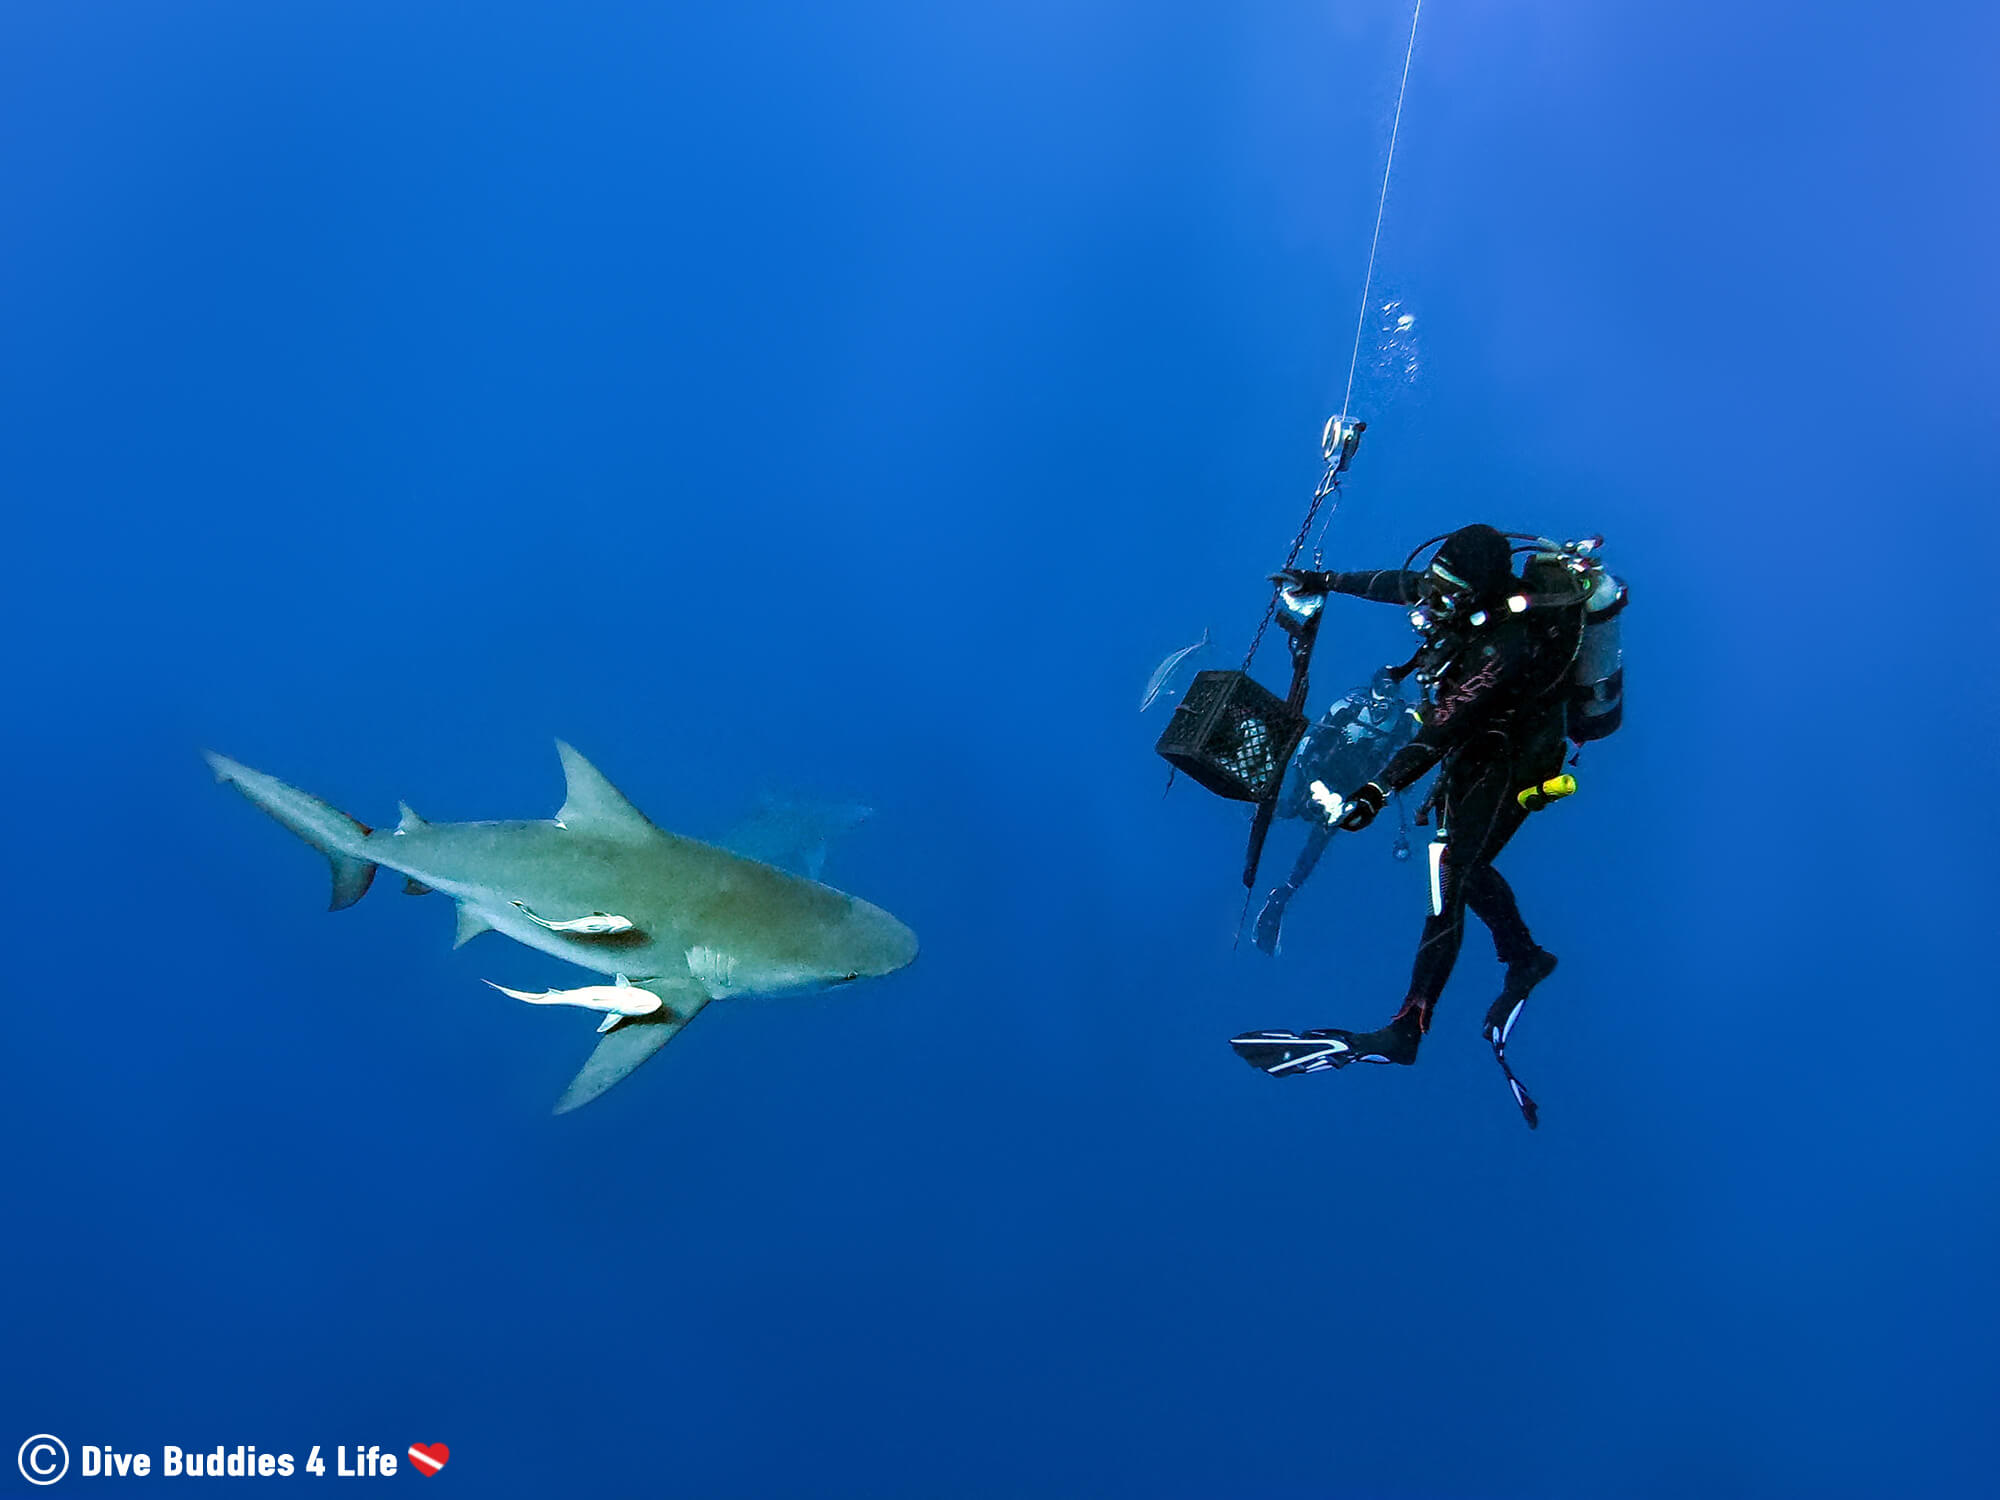 A Shark Feeder Dangling Bait In Jupiter On A Shark Feeding Dive, Florida, USA